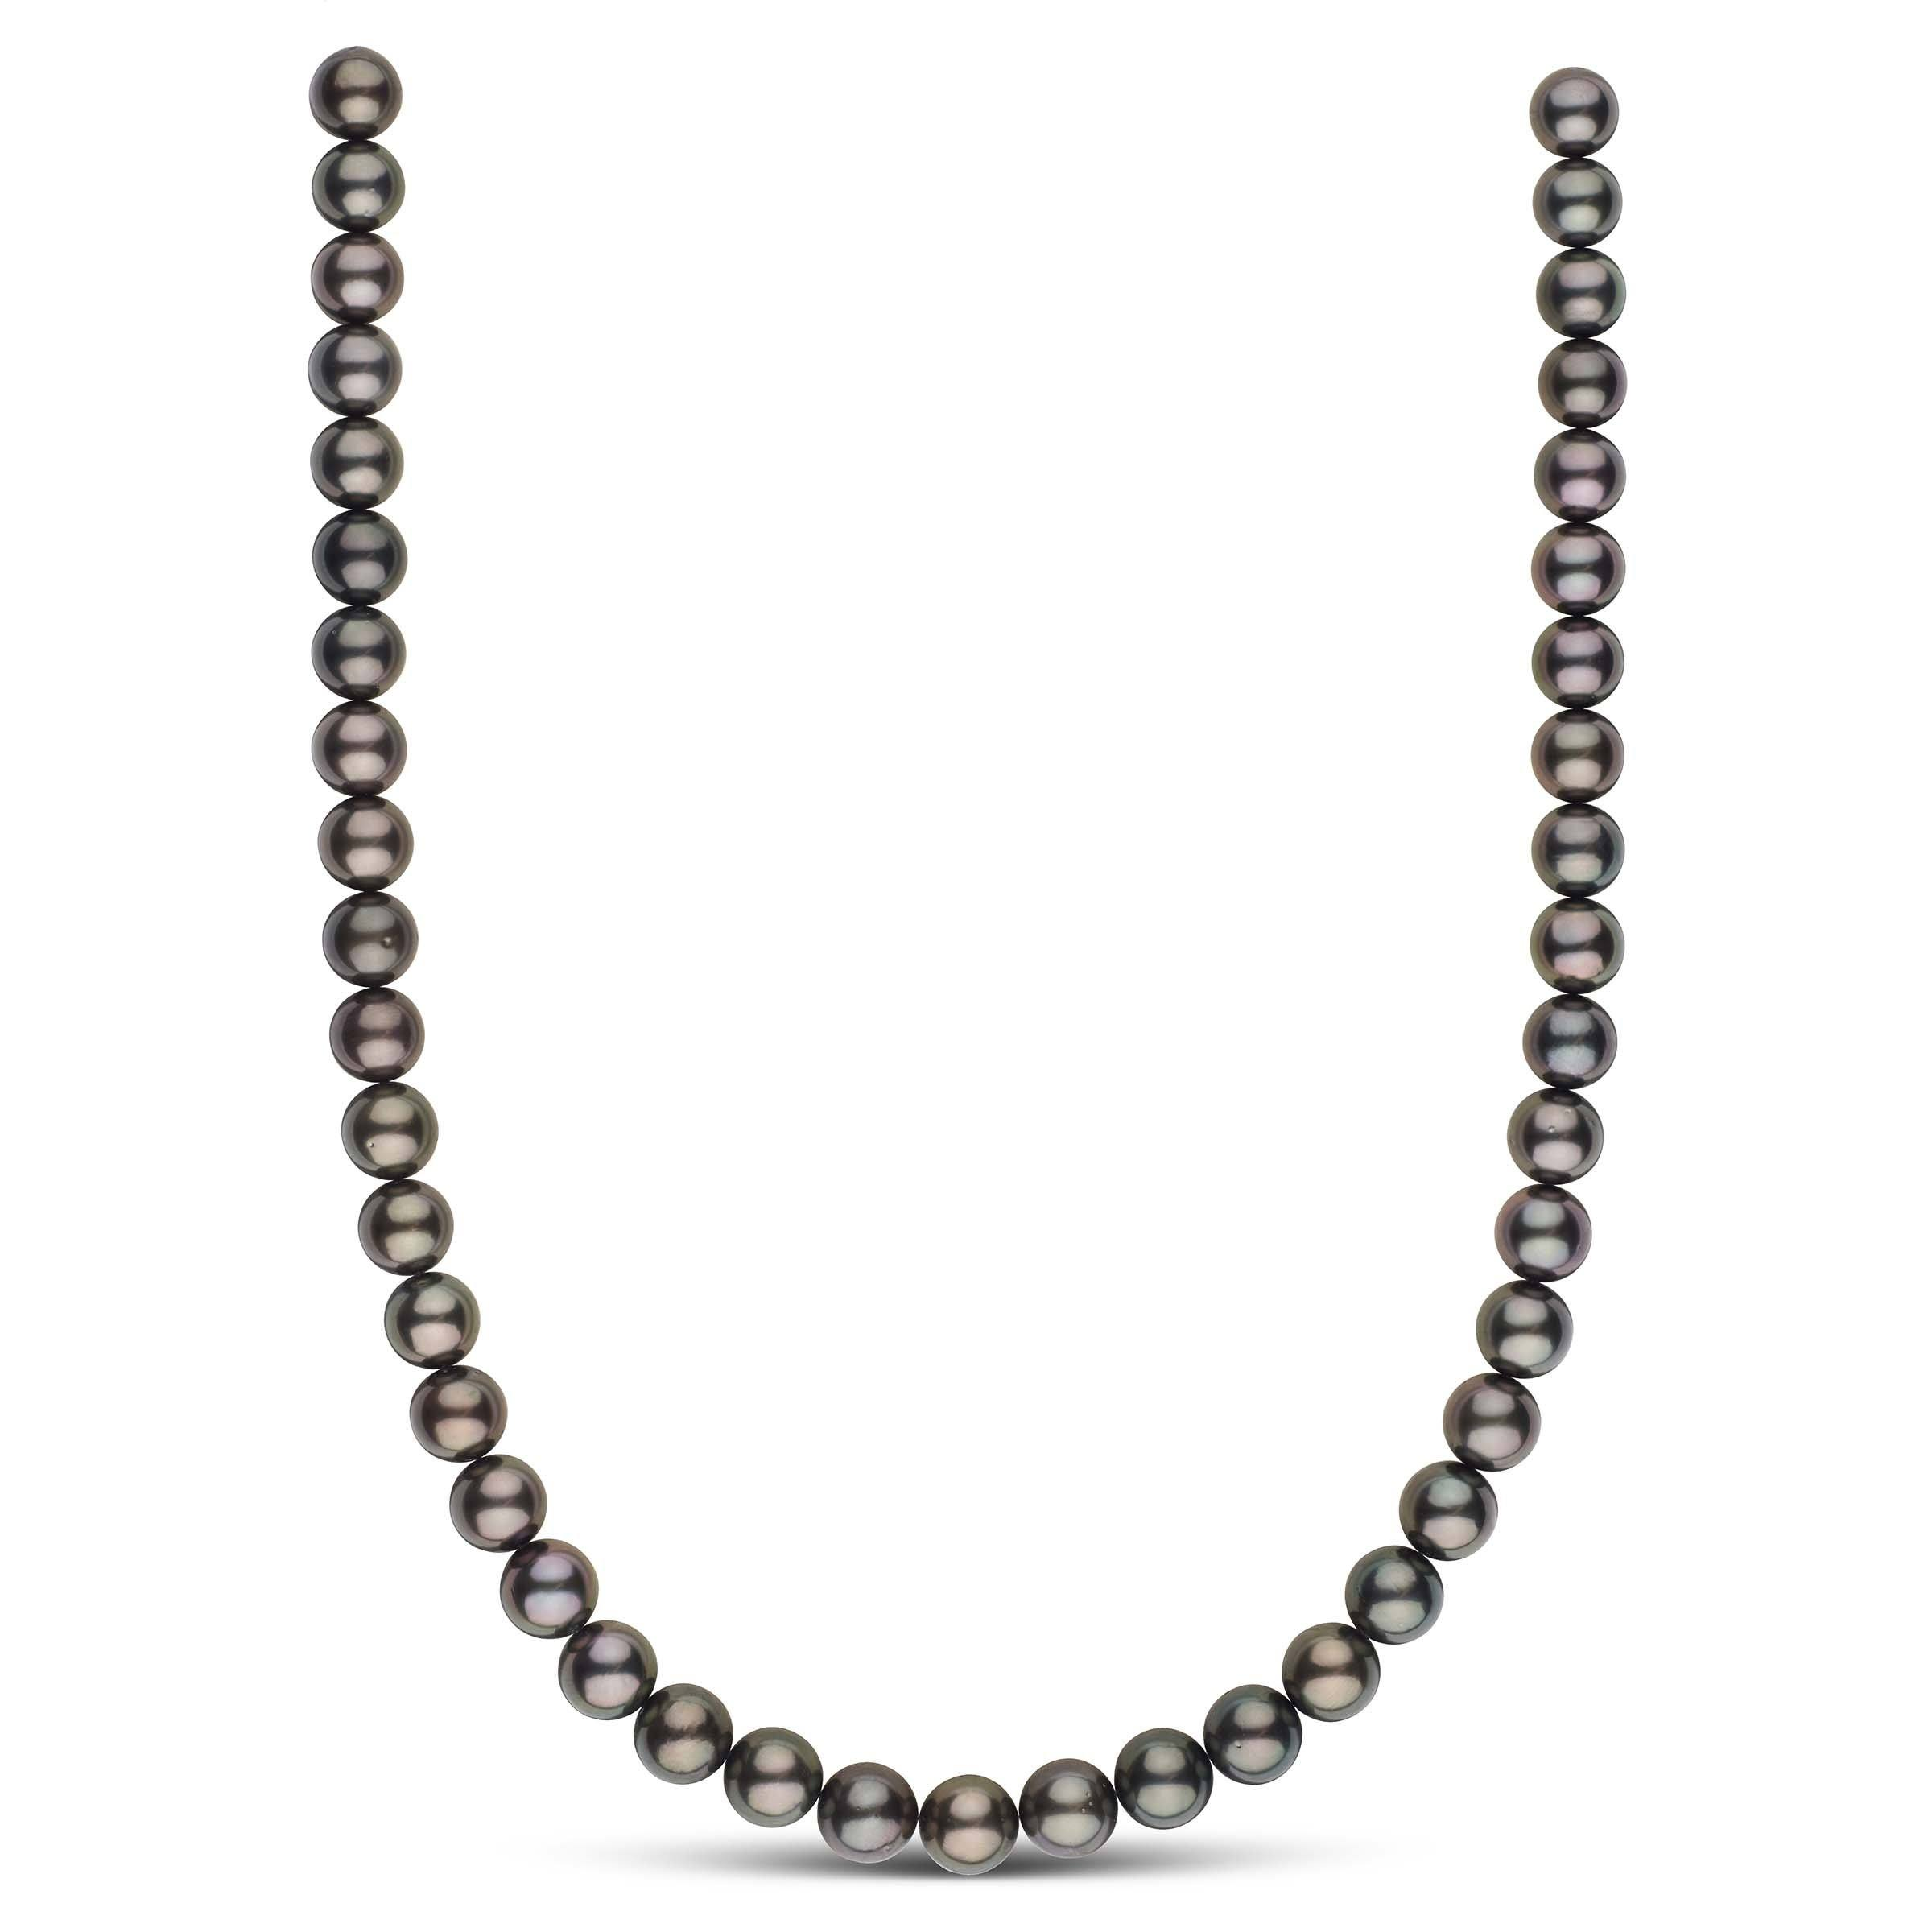 18-inch 9.0-9.9 mm AA+/AAA Round Tahitian Pearl Necklace